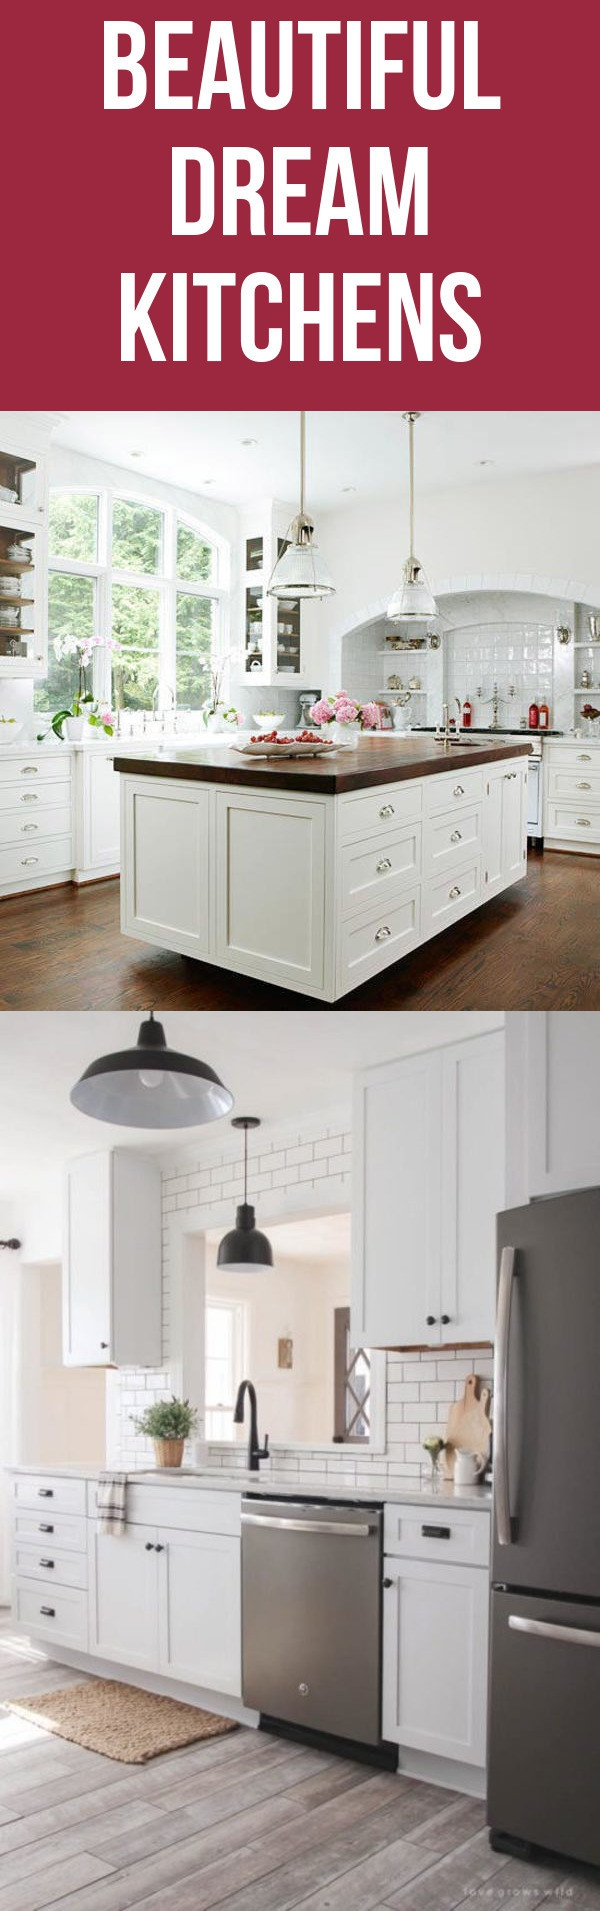 12 White Farmhouse Dream Kitchen Designs And Styles Spark Love